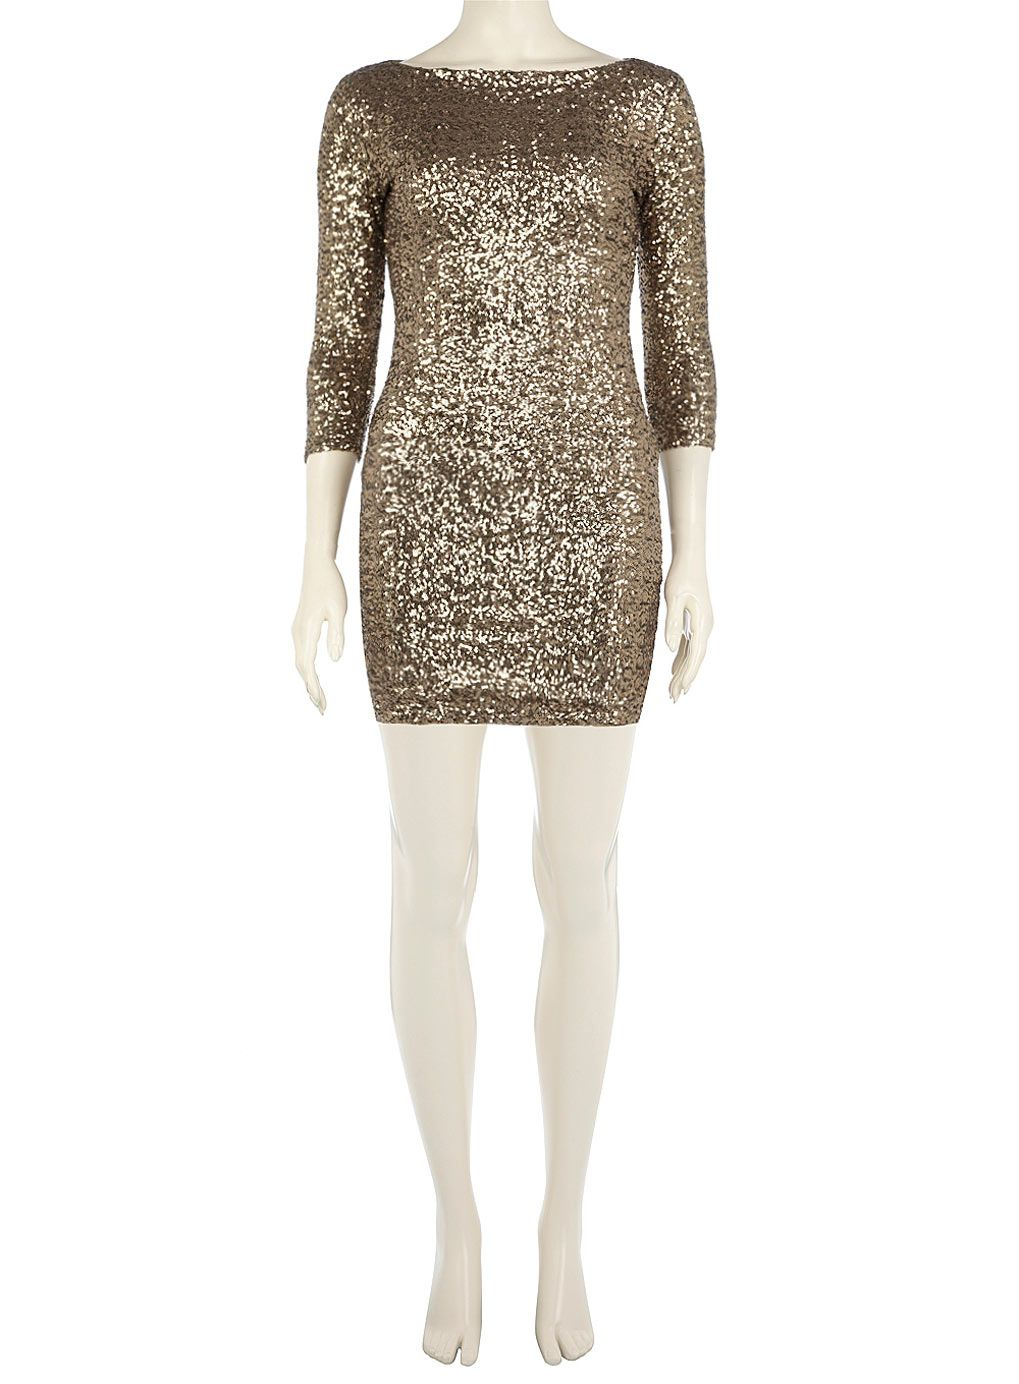 Sparkly dress need this for the big party gatherings